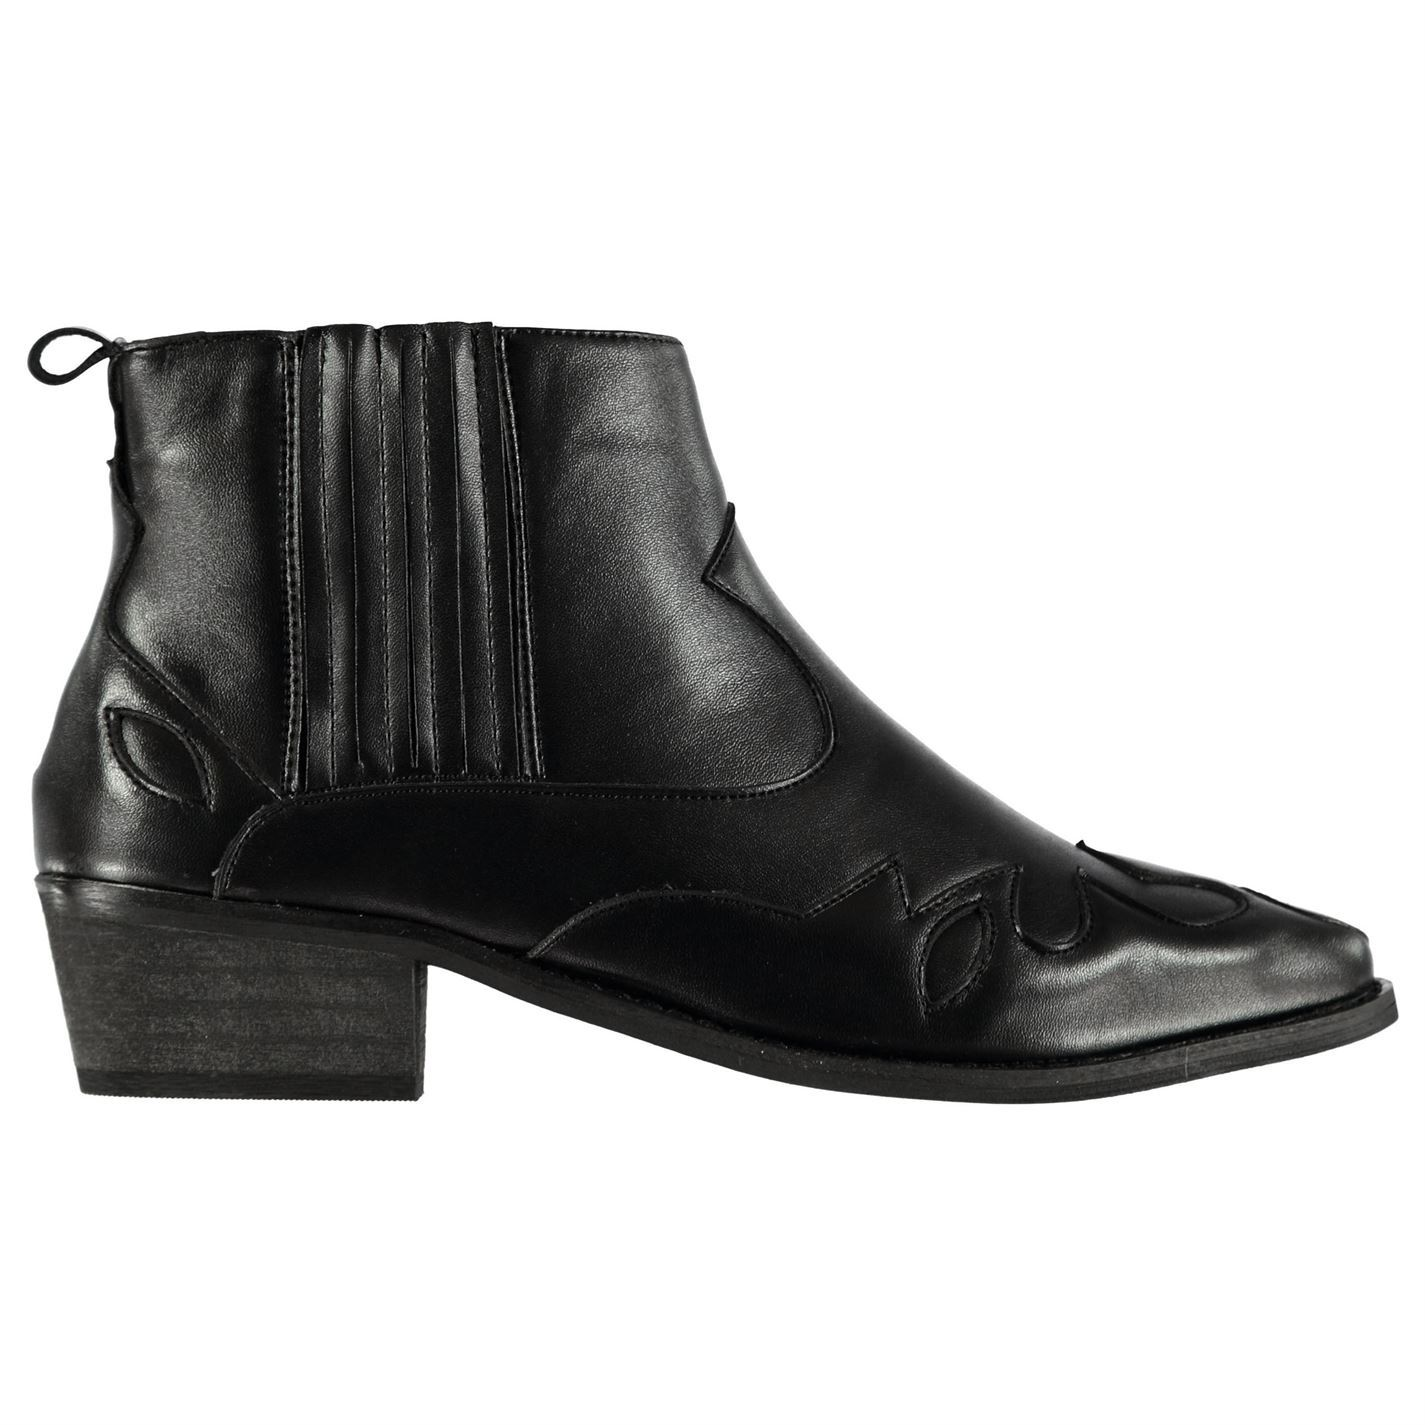 Damenschuhe Glamorous Cowboy Stiefel Toe Flat Ankle Pointed Toe Stiefel New 80ffe7